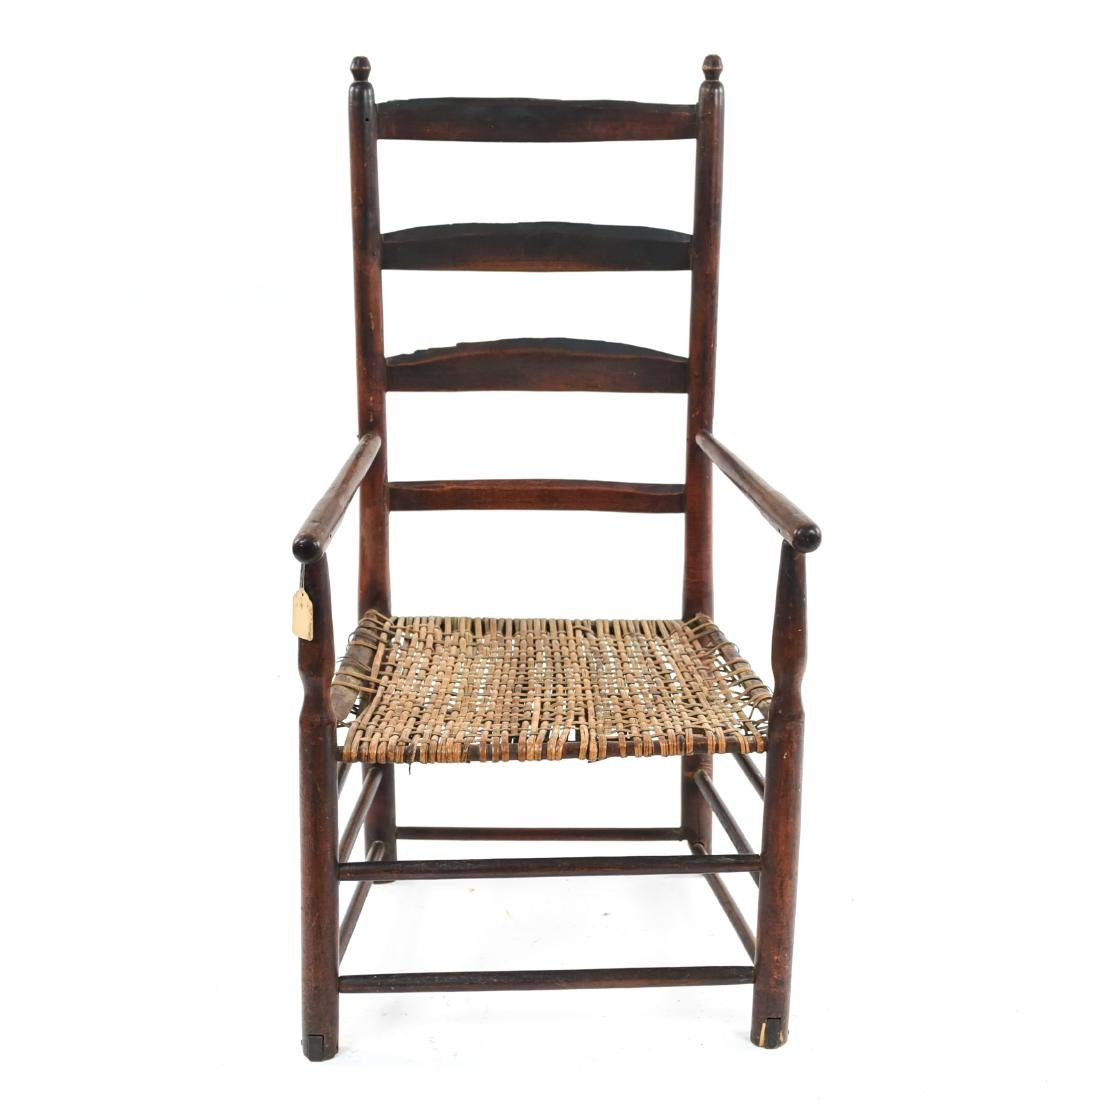 ANTIQUE LADDER BACK CHAIR